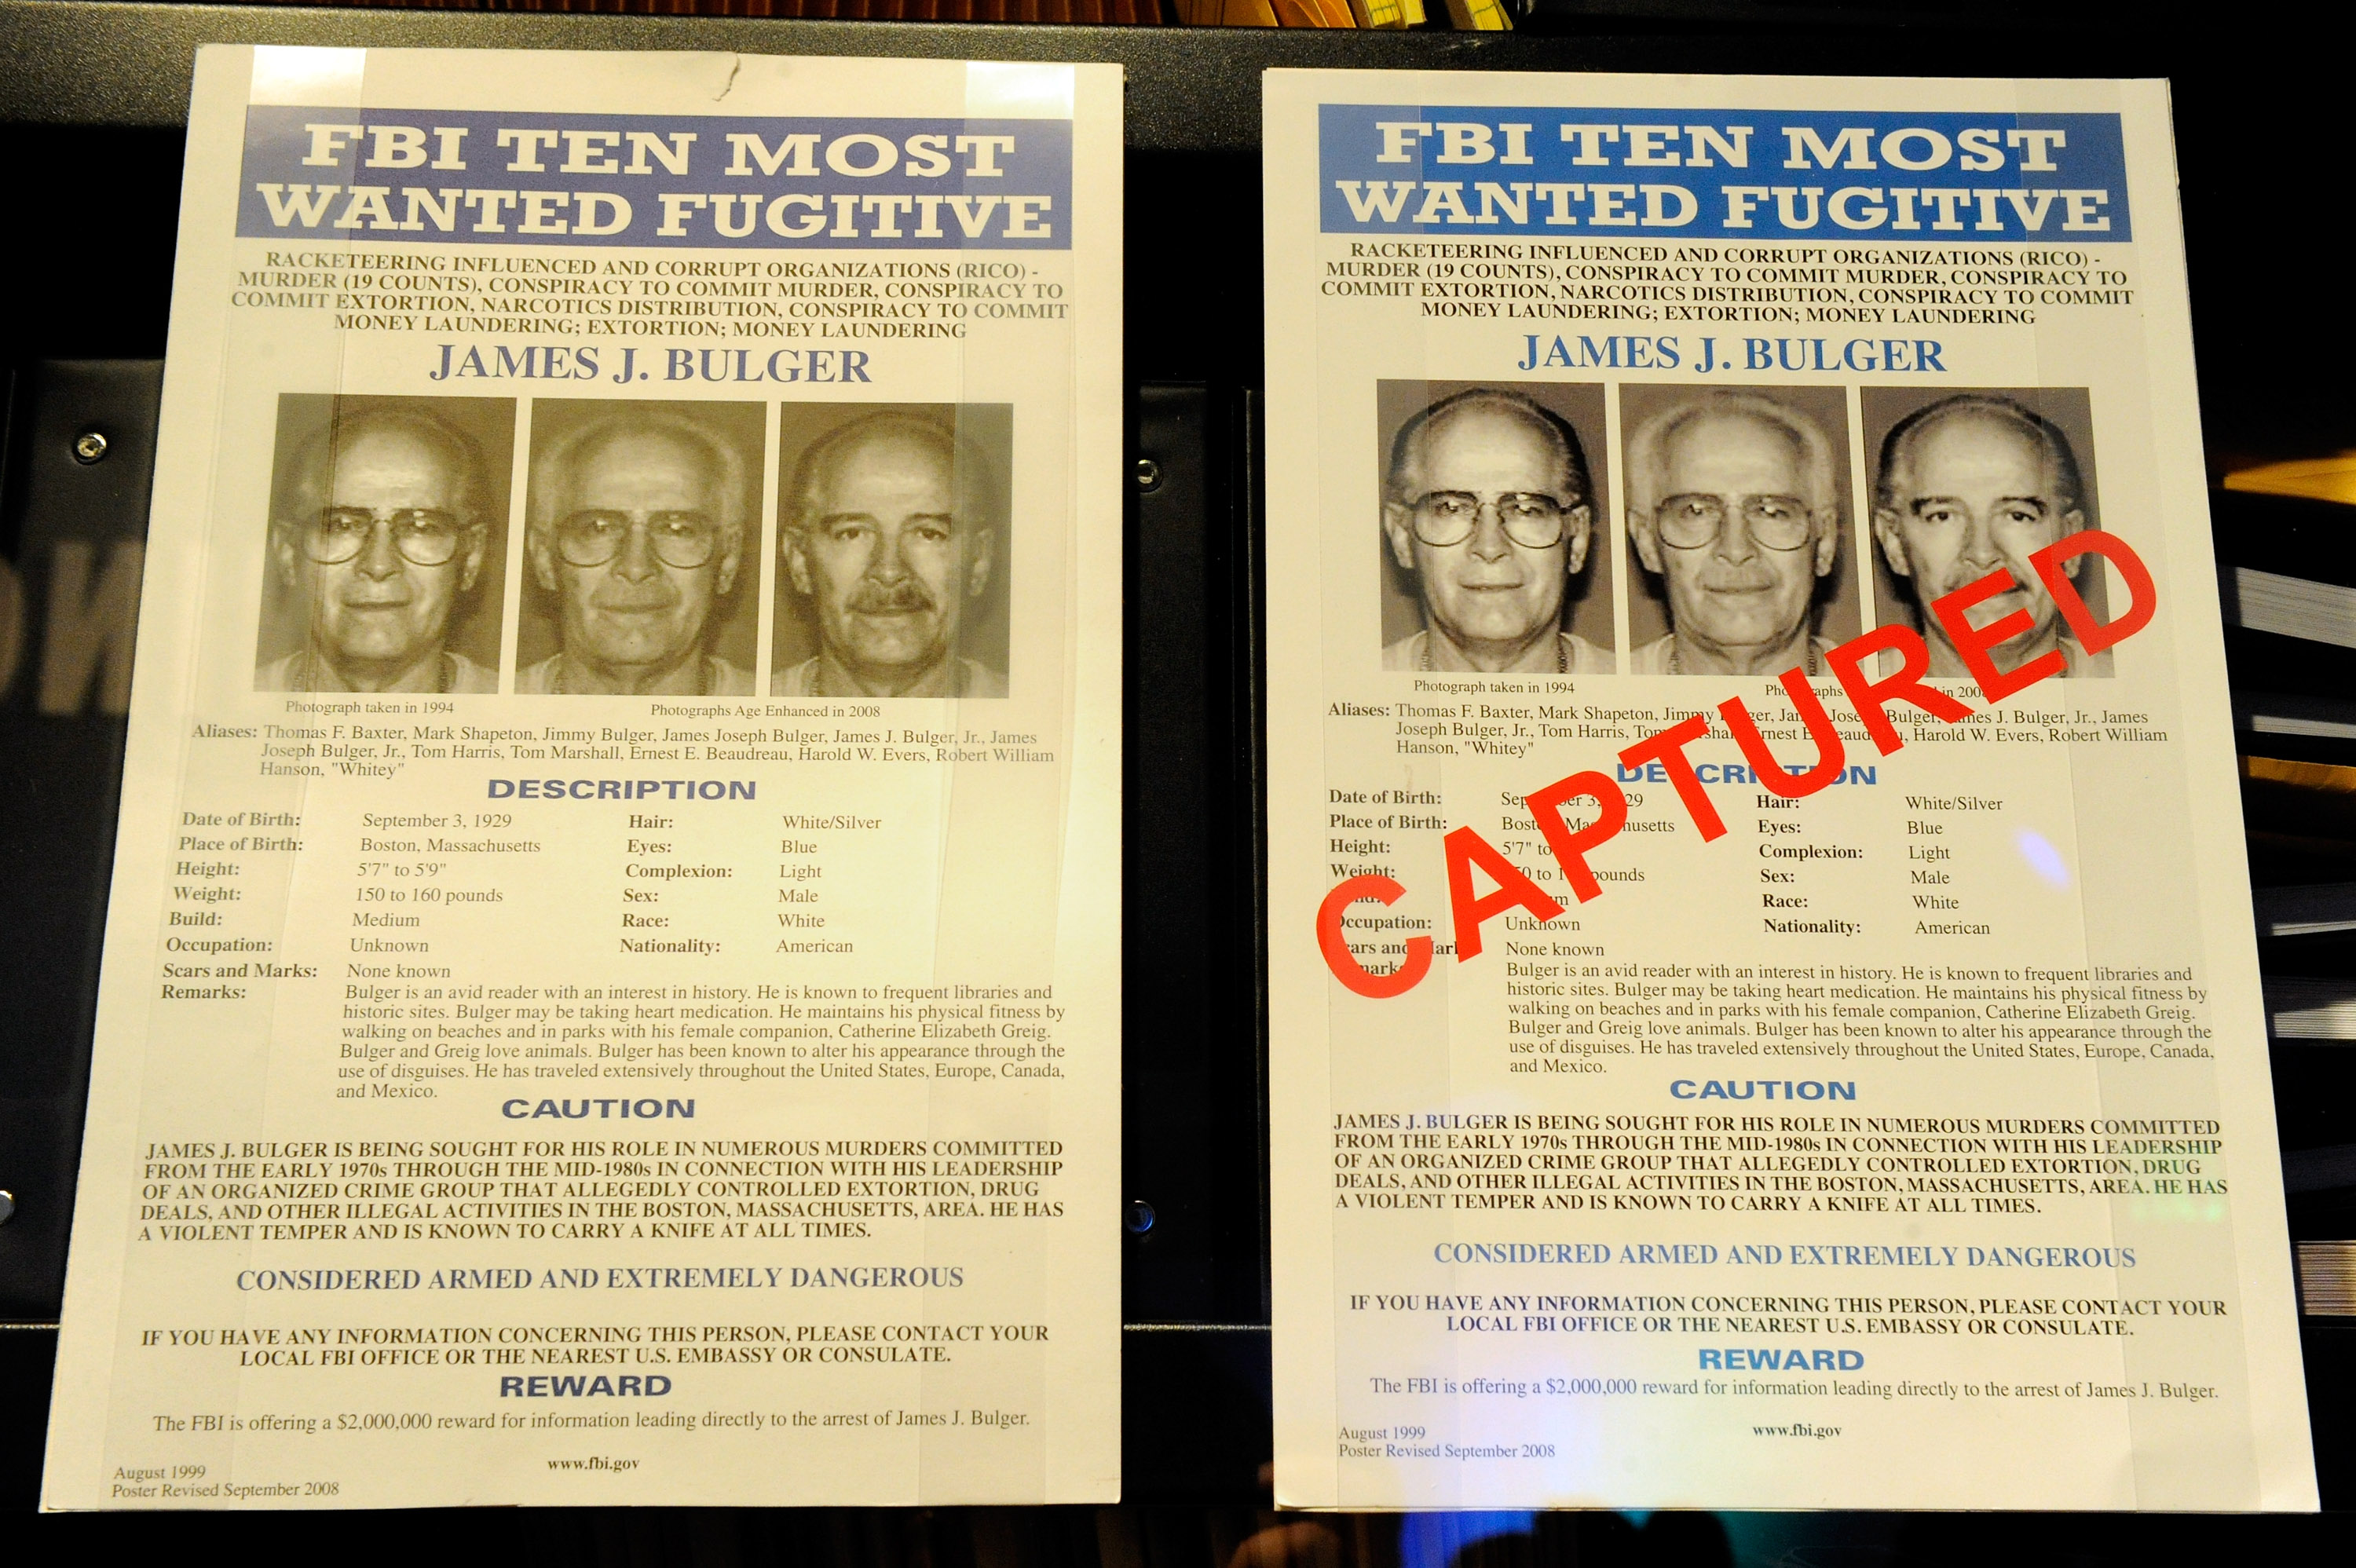 FBI Wanted posters for James Bulger are displayed at The Mob Museum February 13, 2012 in Las Vegas, Nevada. Ethan Miller/Getty Images